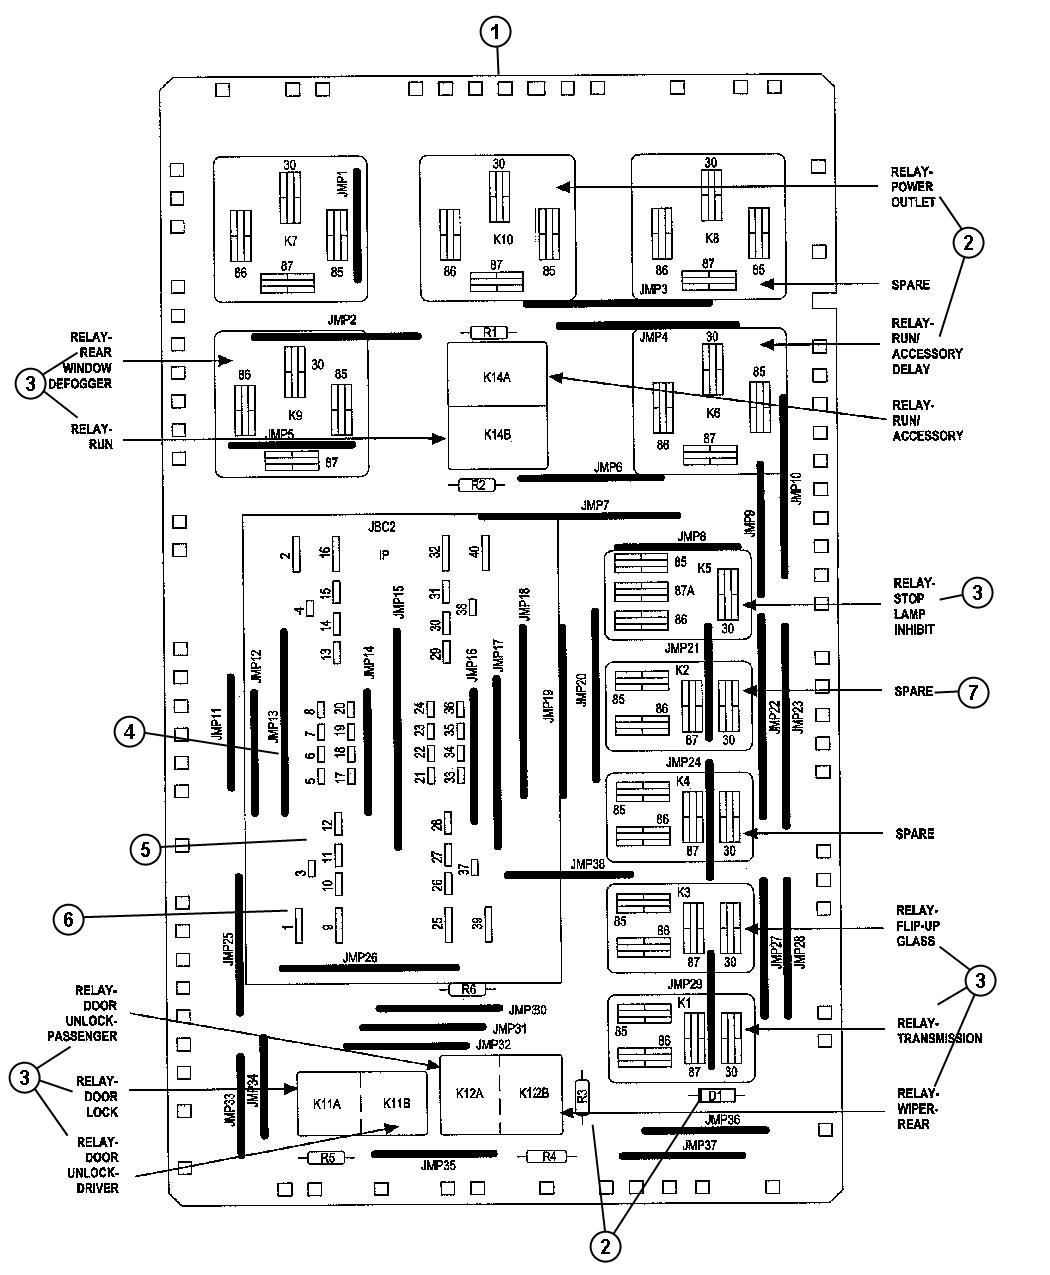 1977 Dodge Motorhome Wiring Diagram